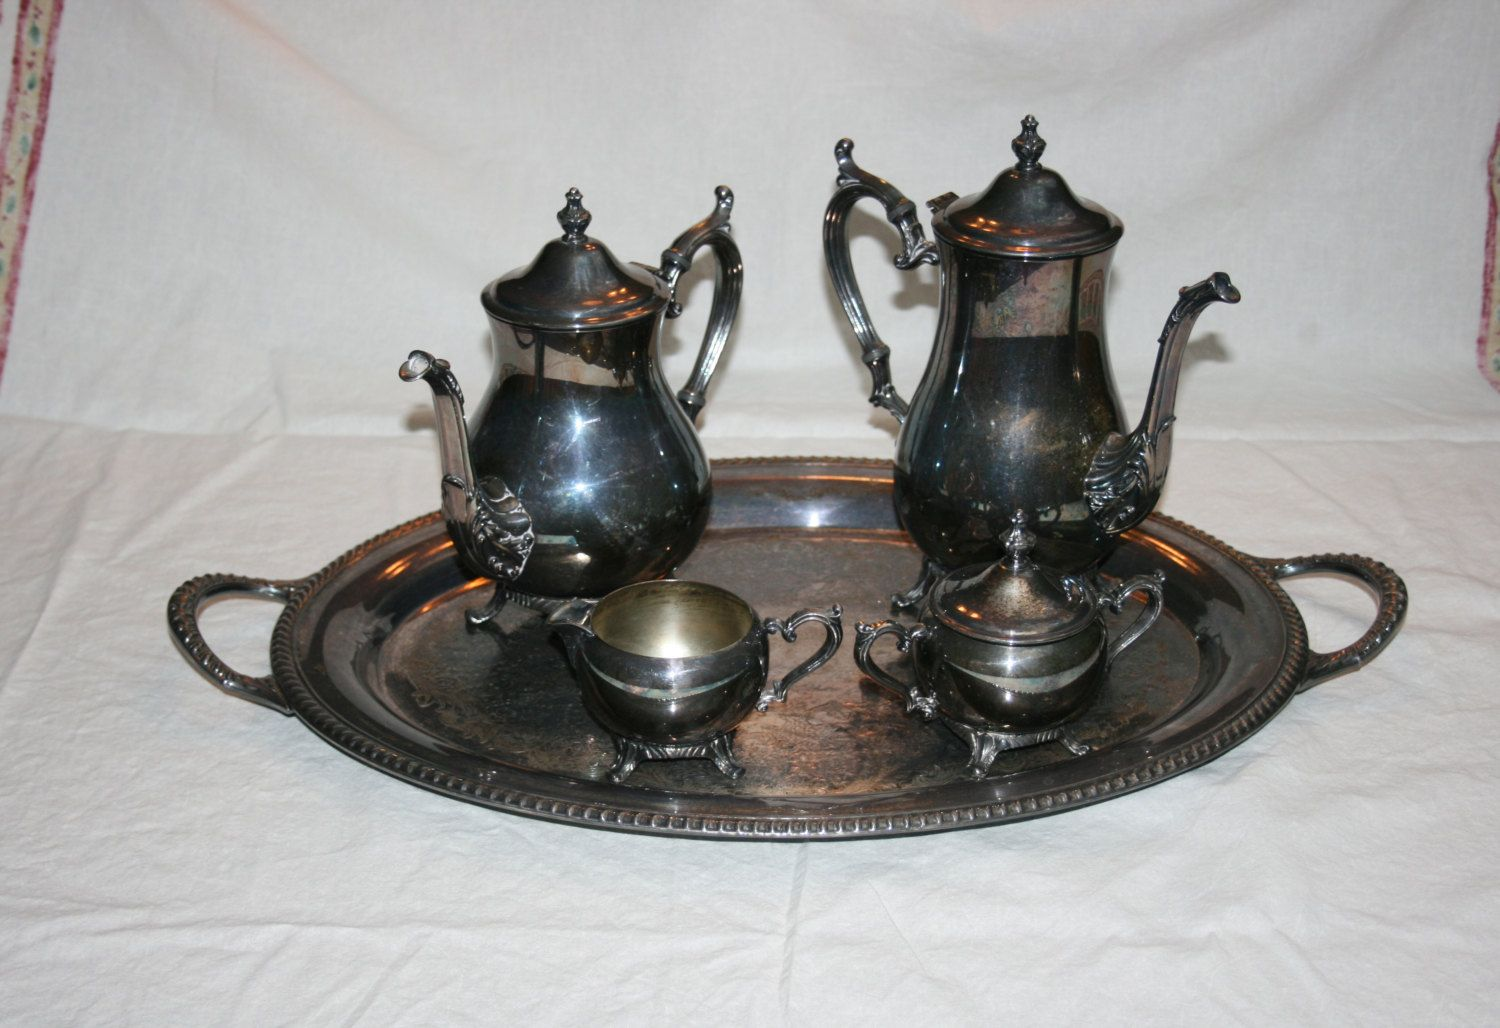 Silver Plated Tea Set Value & Vintage Oneida Silver Plate